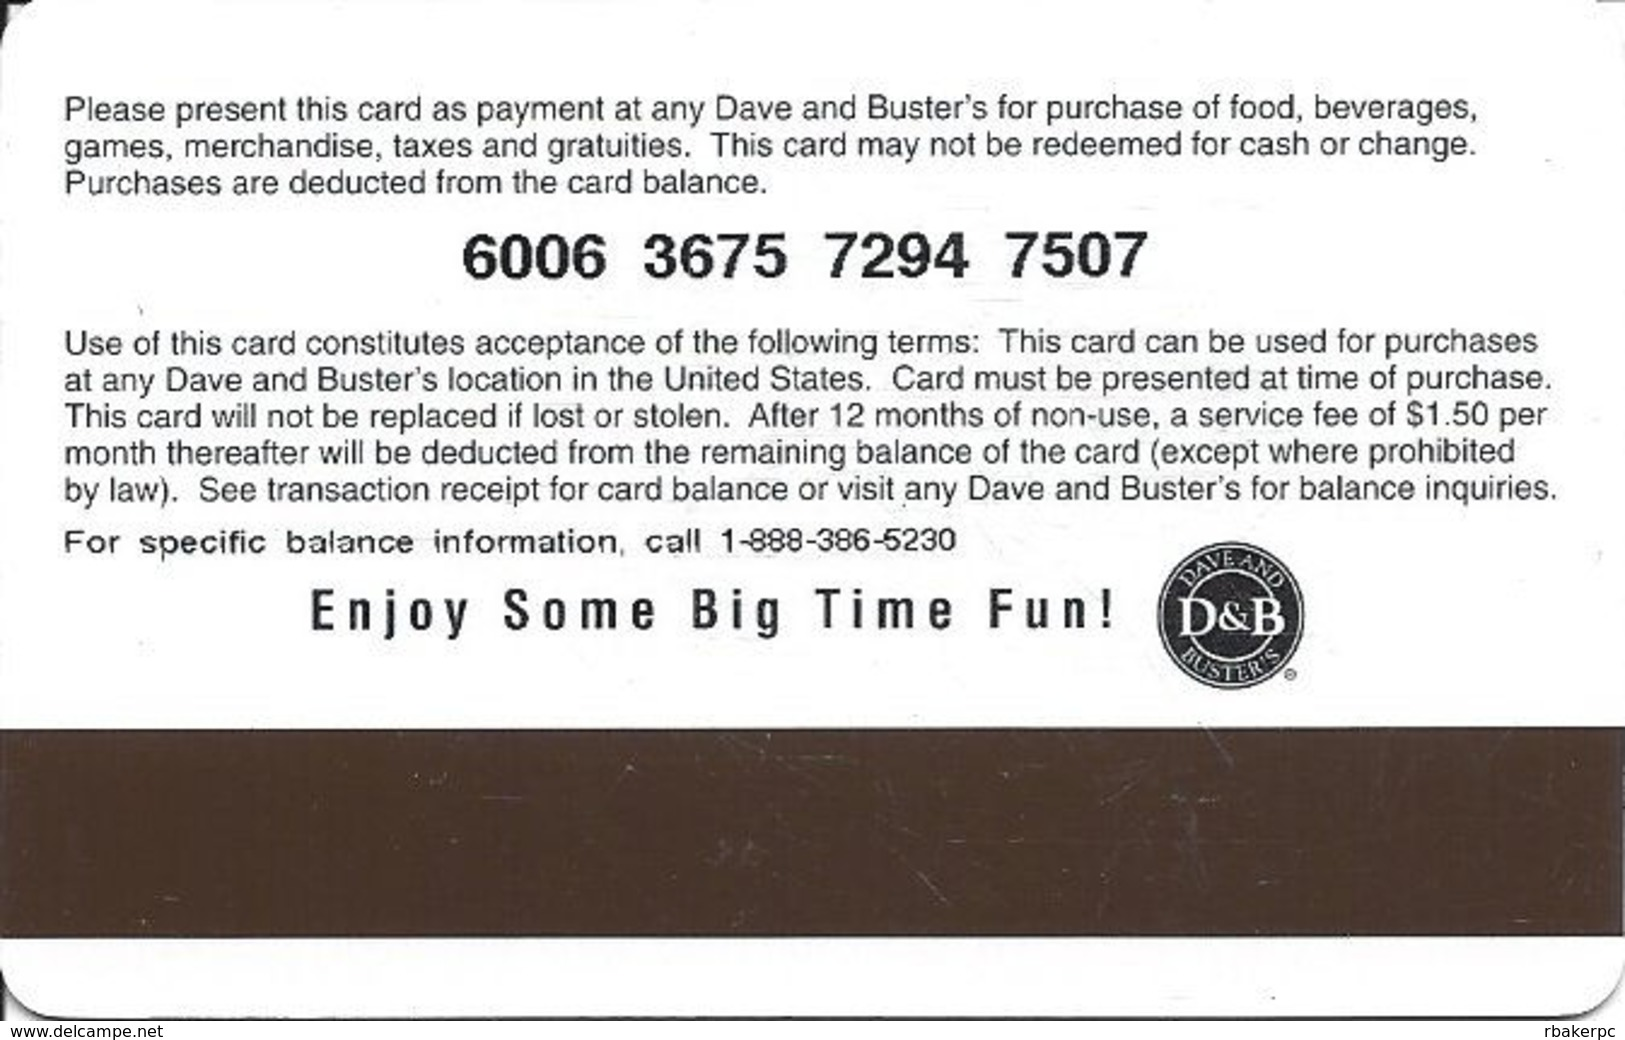 Dave And Brusters (D&B) Gift Card - D&B Bucks - Gift Cards